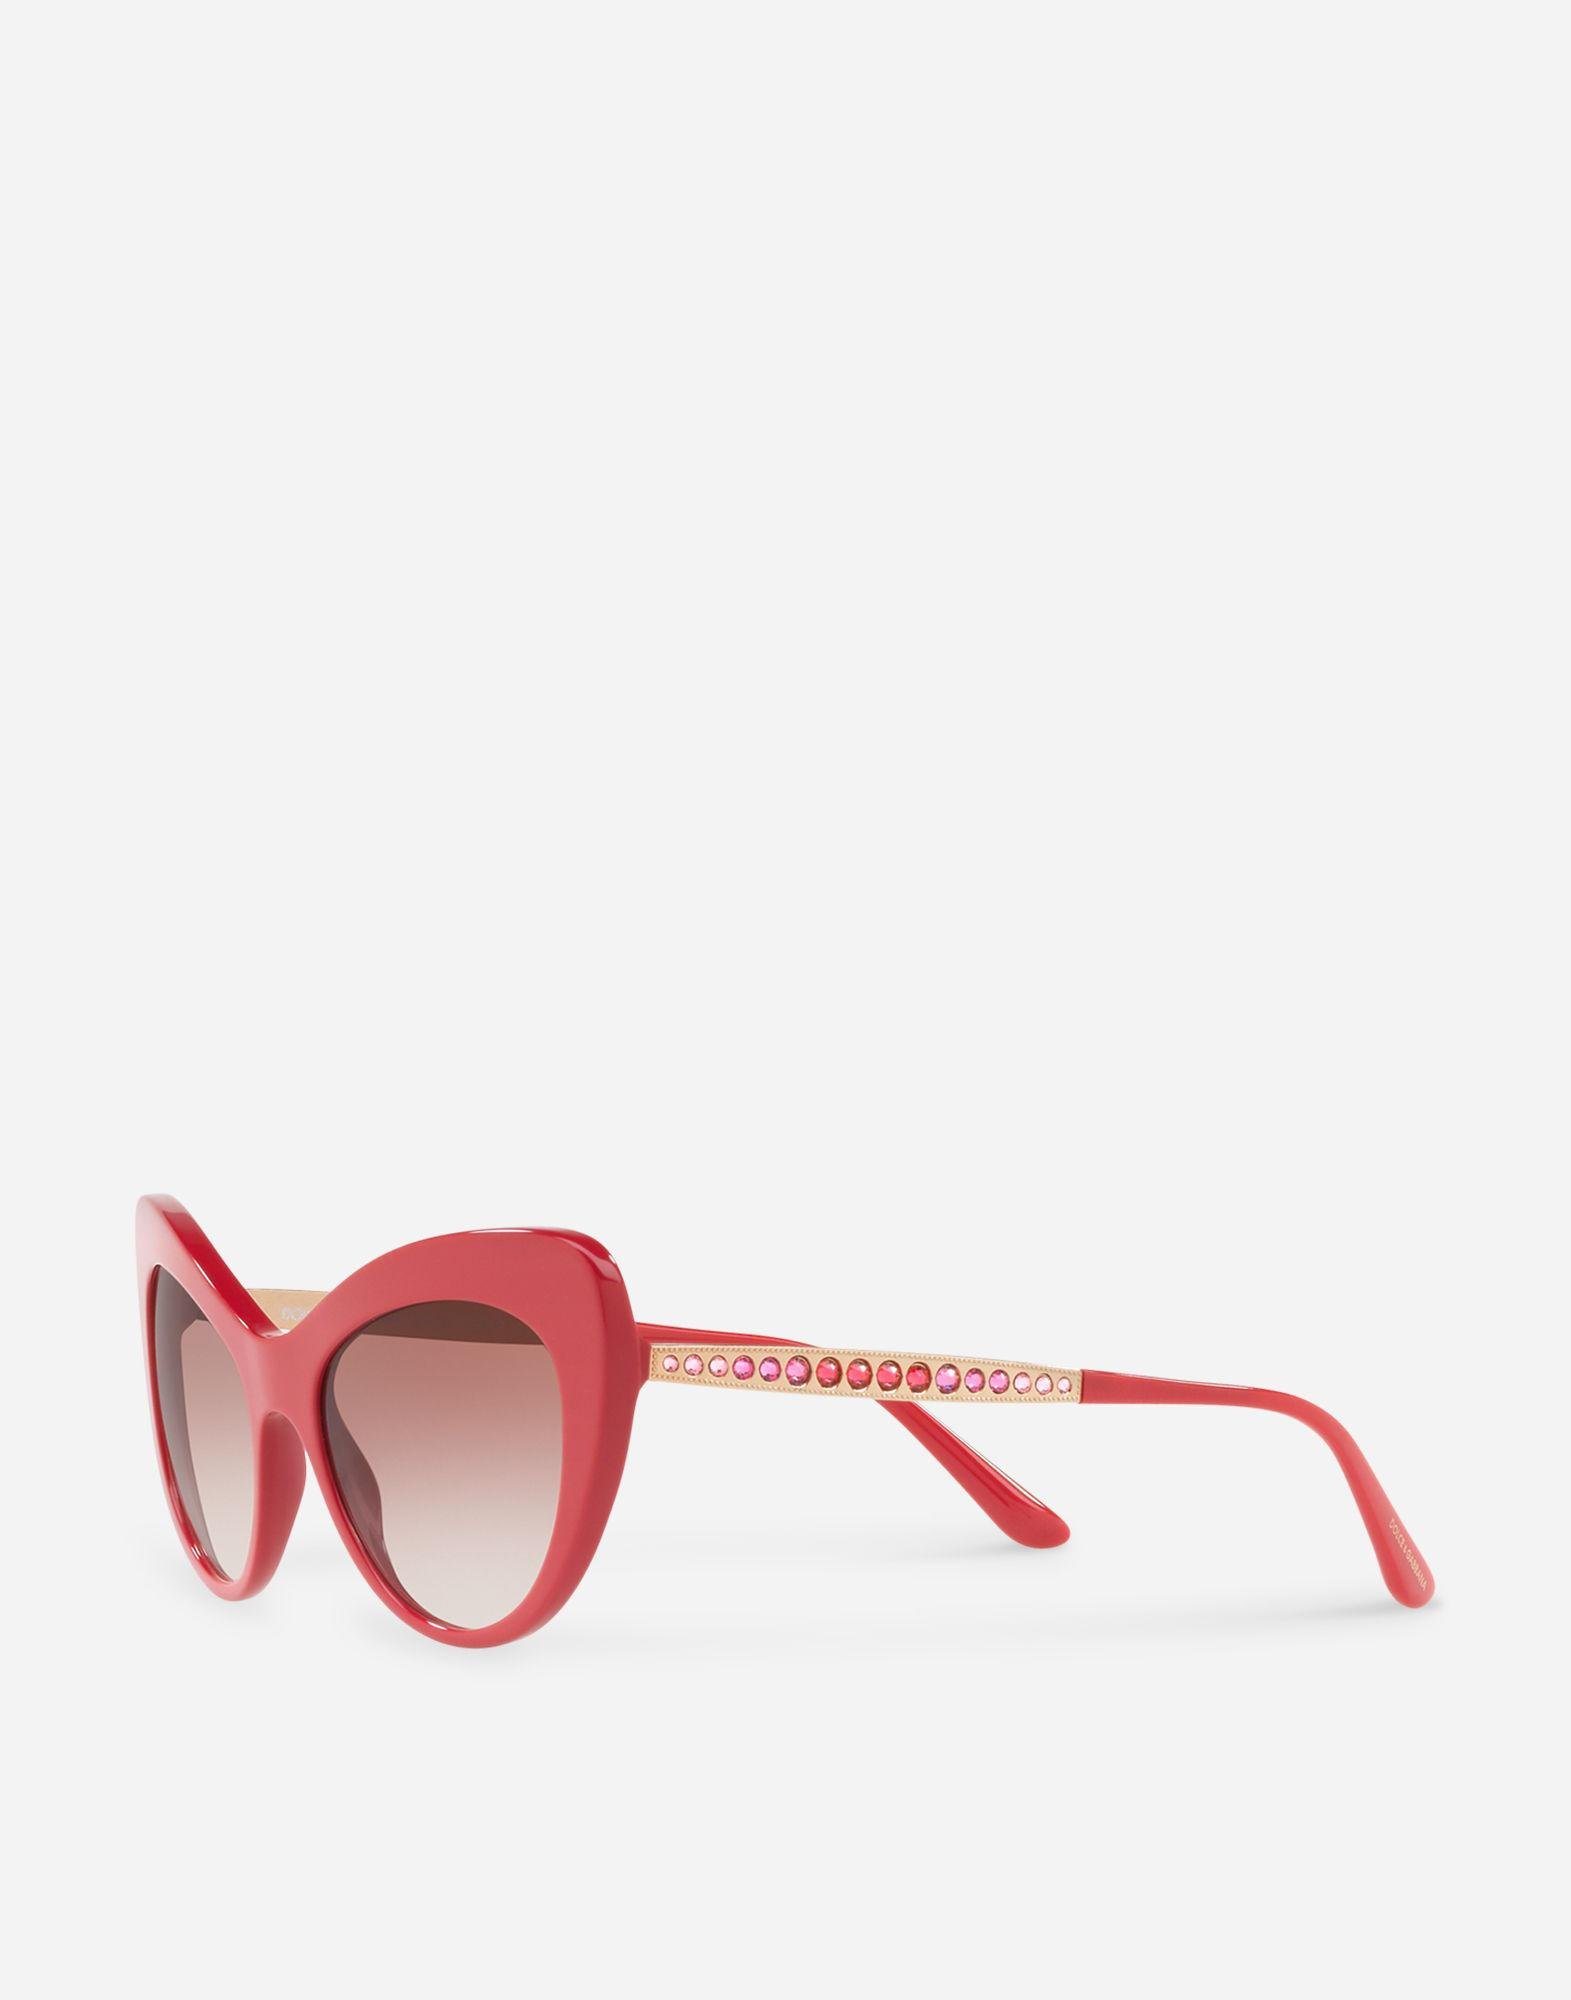 63b99c282a9 Lyst - Dolce   Gabbana Mambo Sunglasses in Red for Men